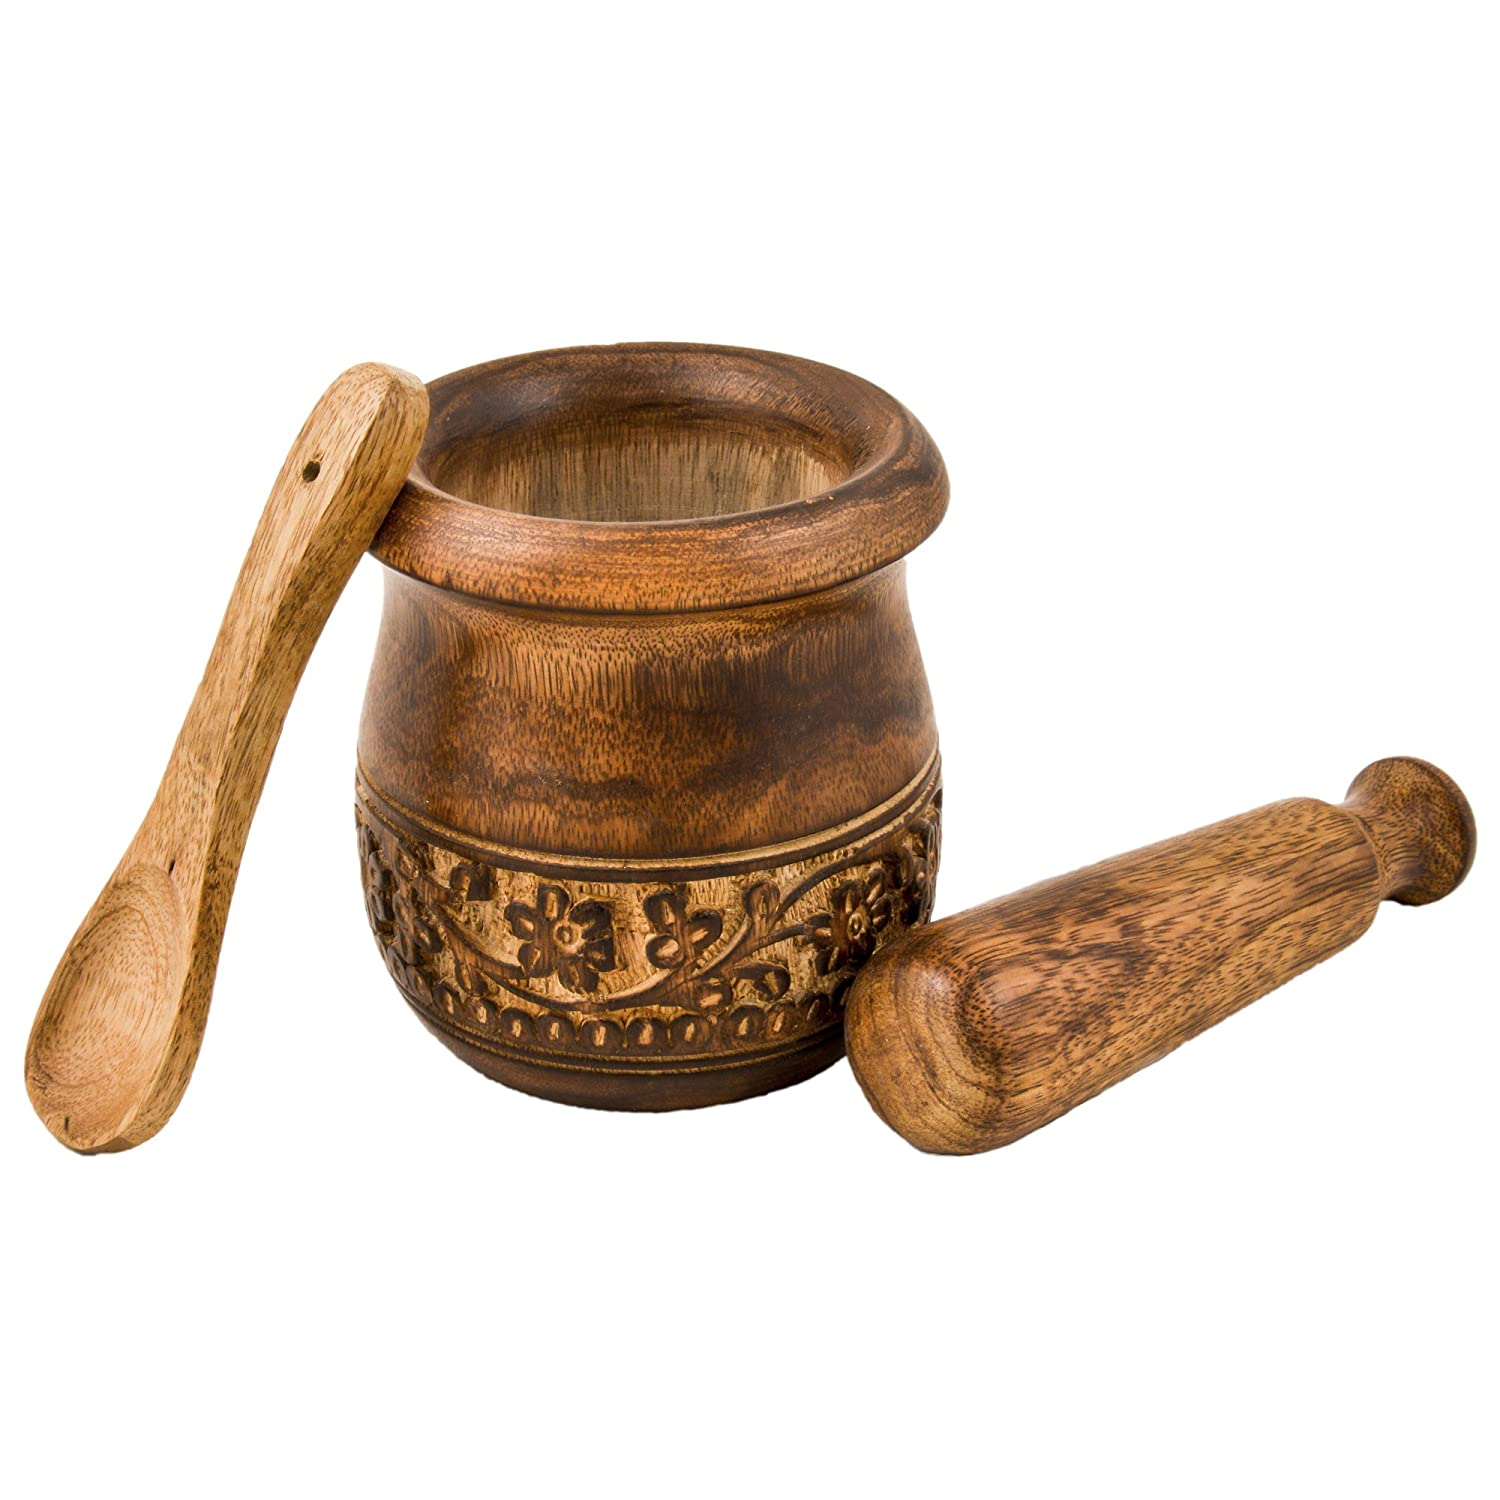 Mothers Day Gifts - GoCraft Wooden Engraved Mortar and Pestle Grinder for Herbs, Spices and Kitchen Usage, Natural Mango Wood Engraved | Handmade Mortar and Pestle - 3.5 in COMINHKPR152290